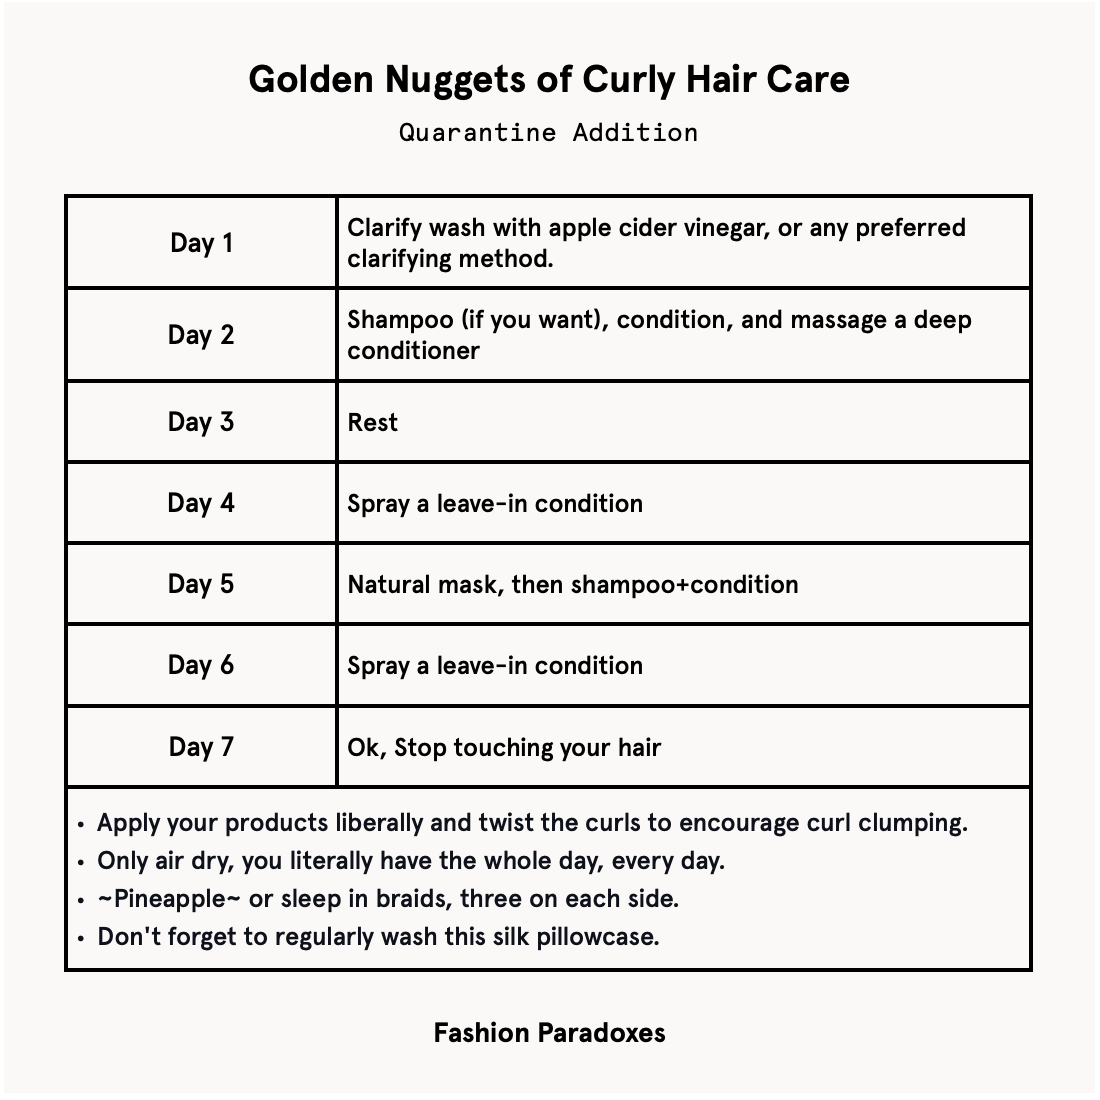 The Quarantine Specific Routine For Curly Hair Fashion Paradoxes